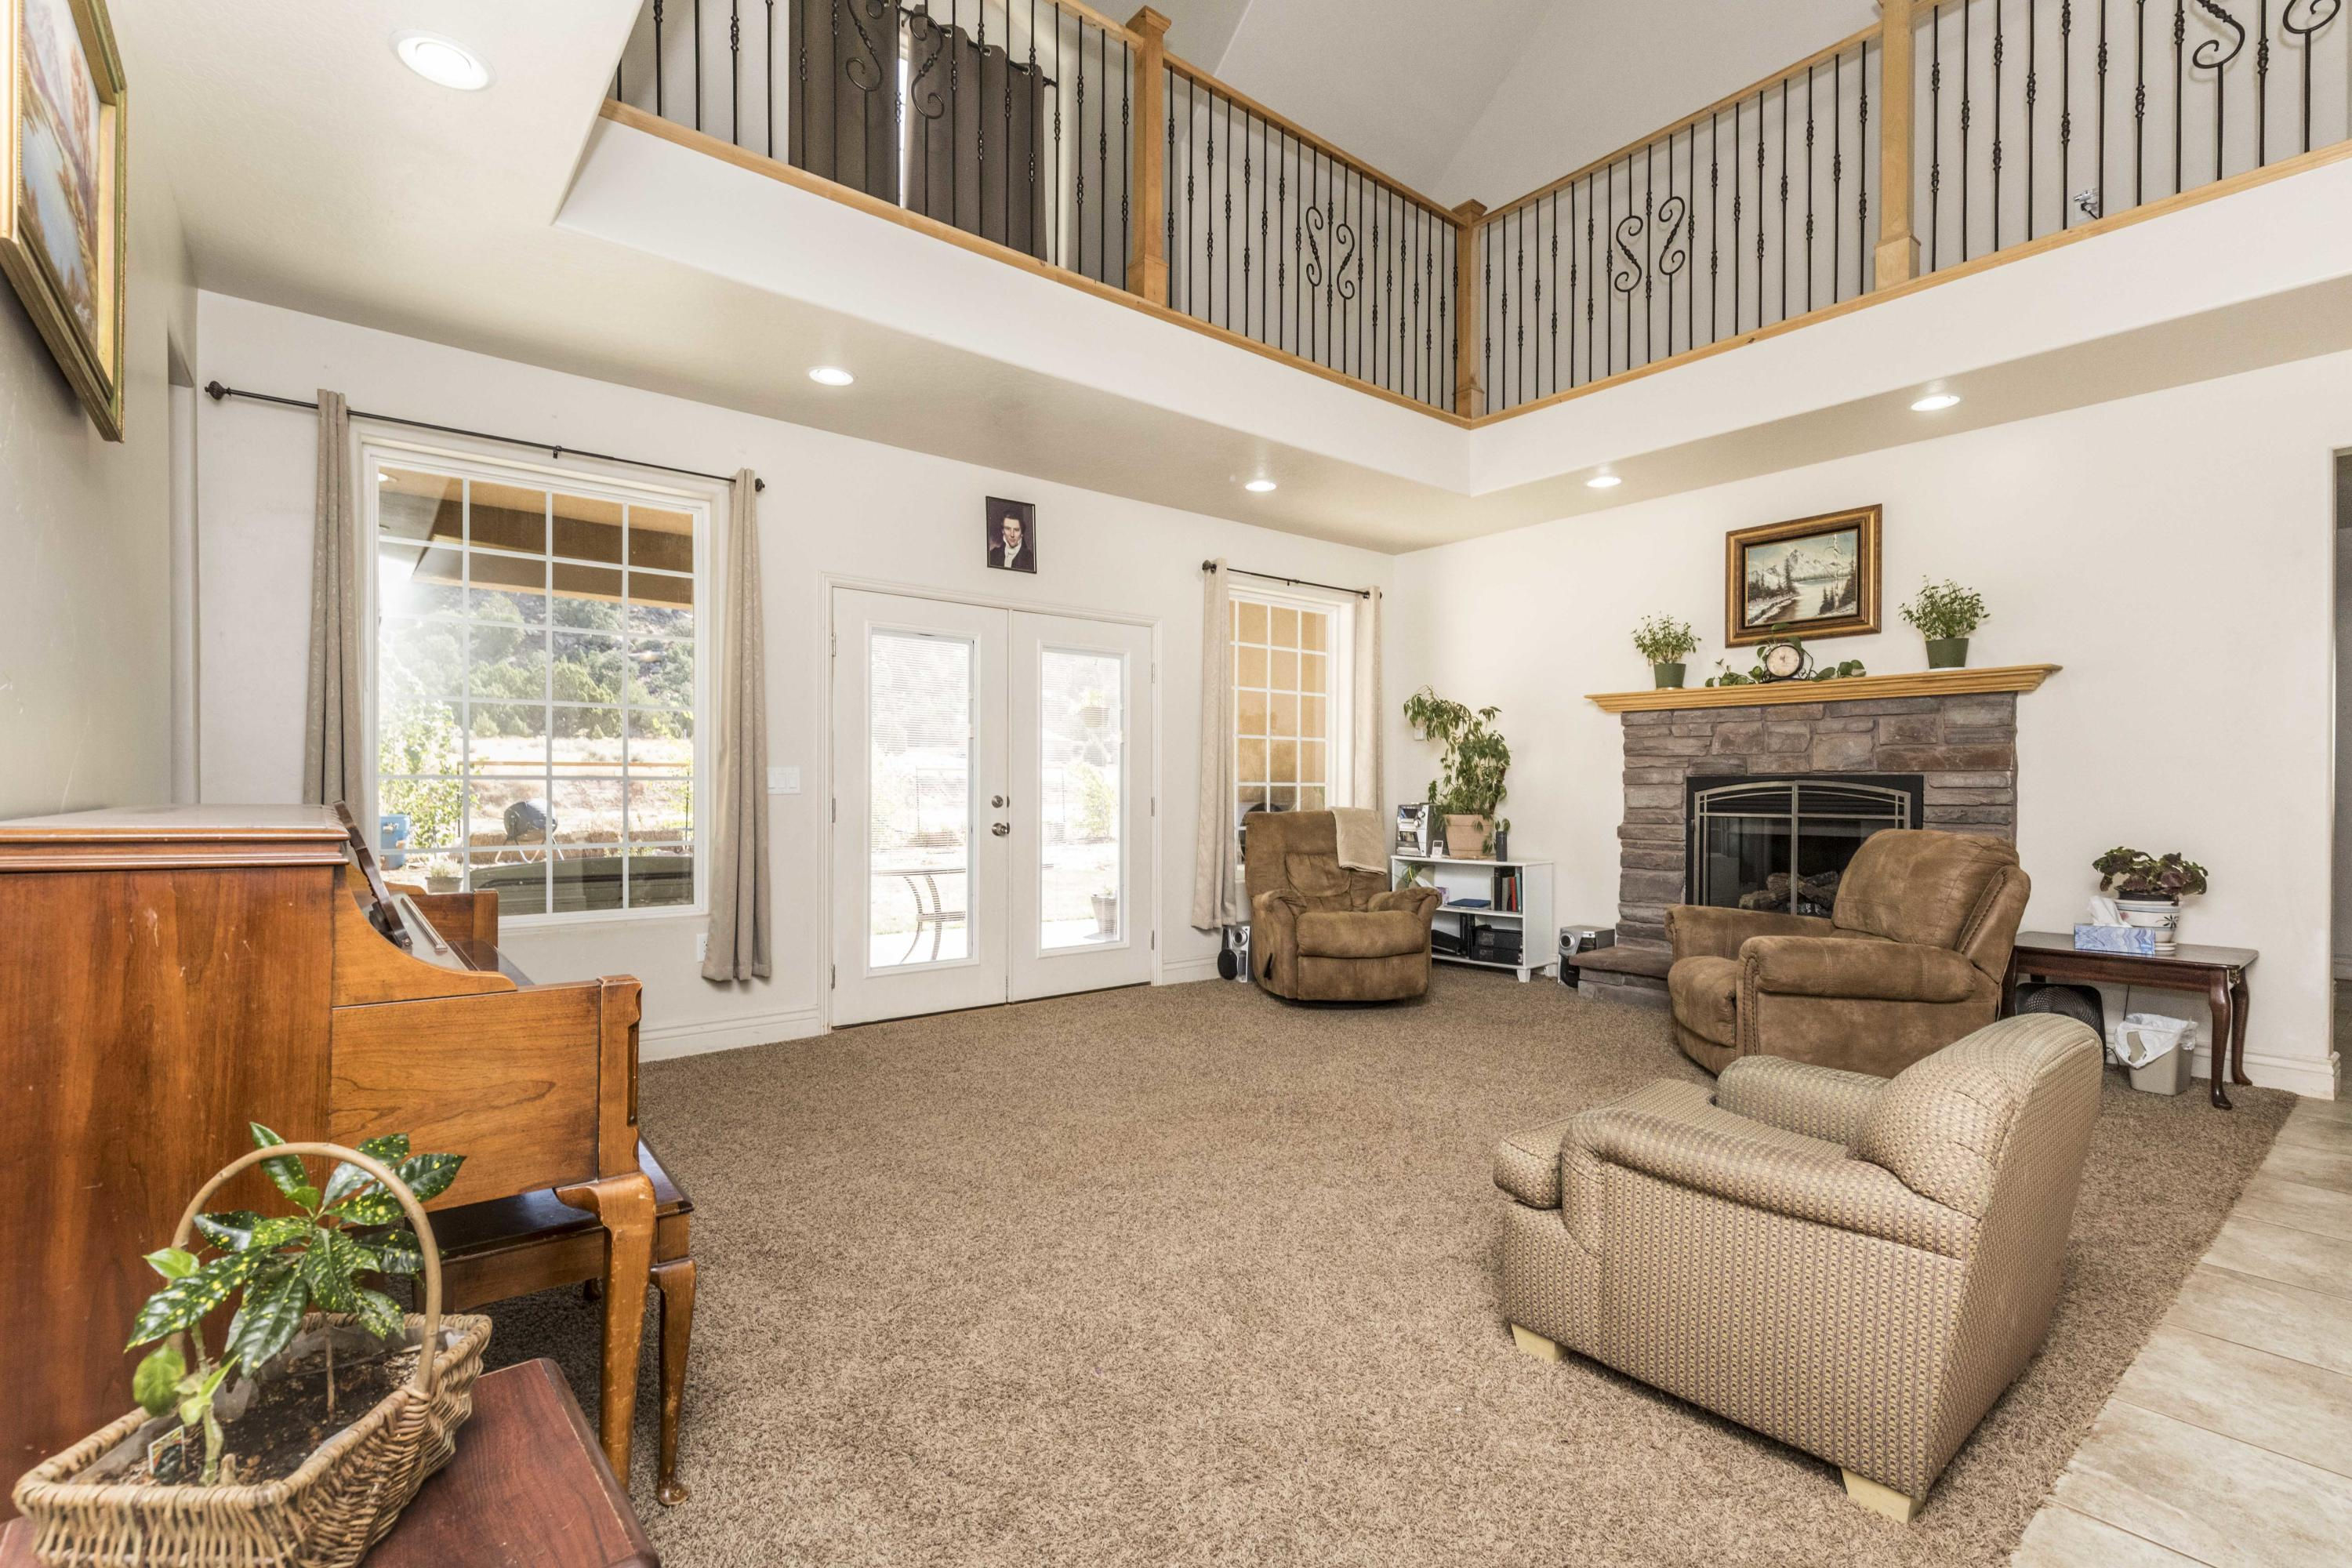 Room for EVERYTHING!  If you were looking for a place with some elbow room, this is the place!  An acre of open space ready for horses, a shop...the possibilities are endless!  24 hours notice to show preferred but not absolutely necessary.  Schedule your showing today!